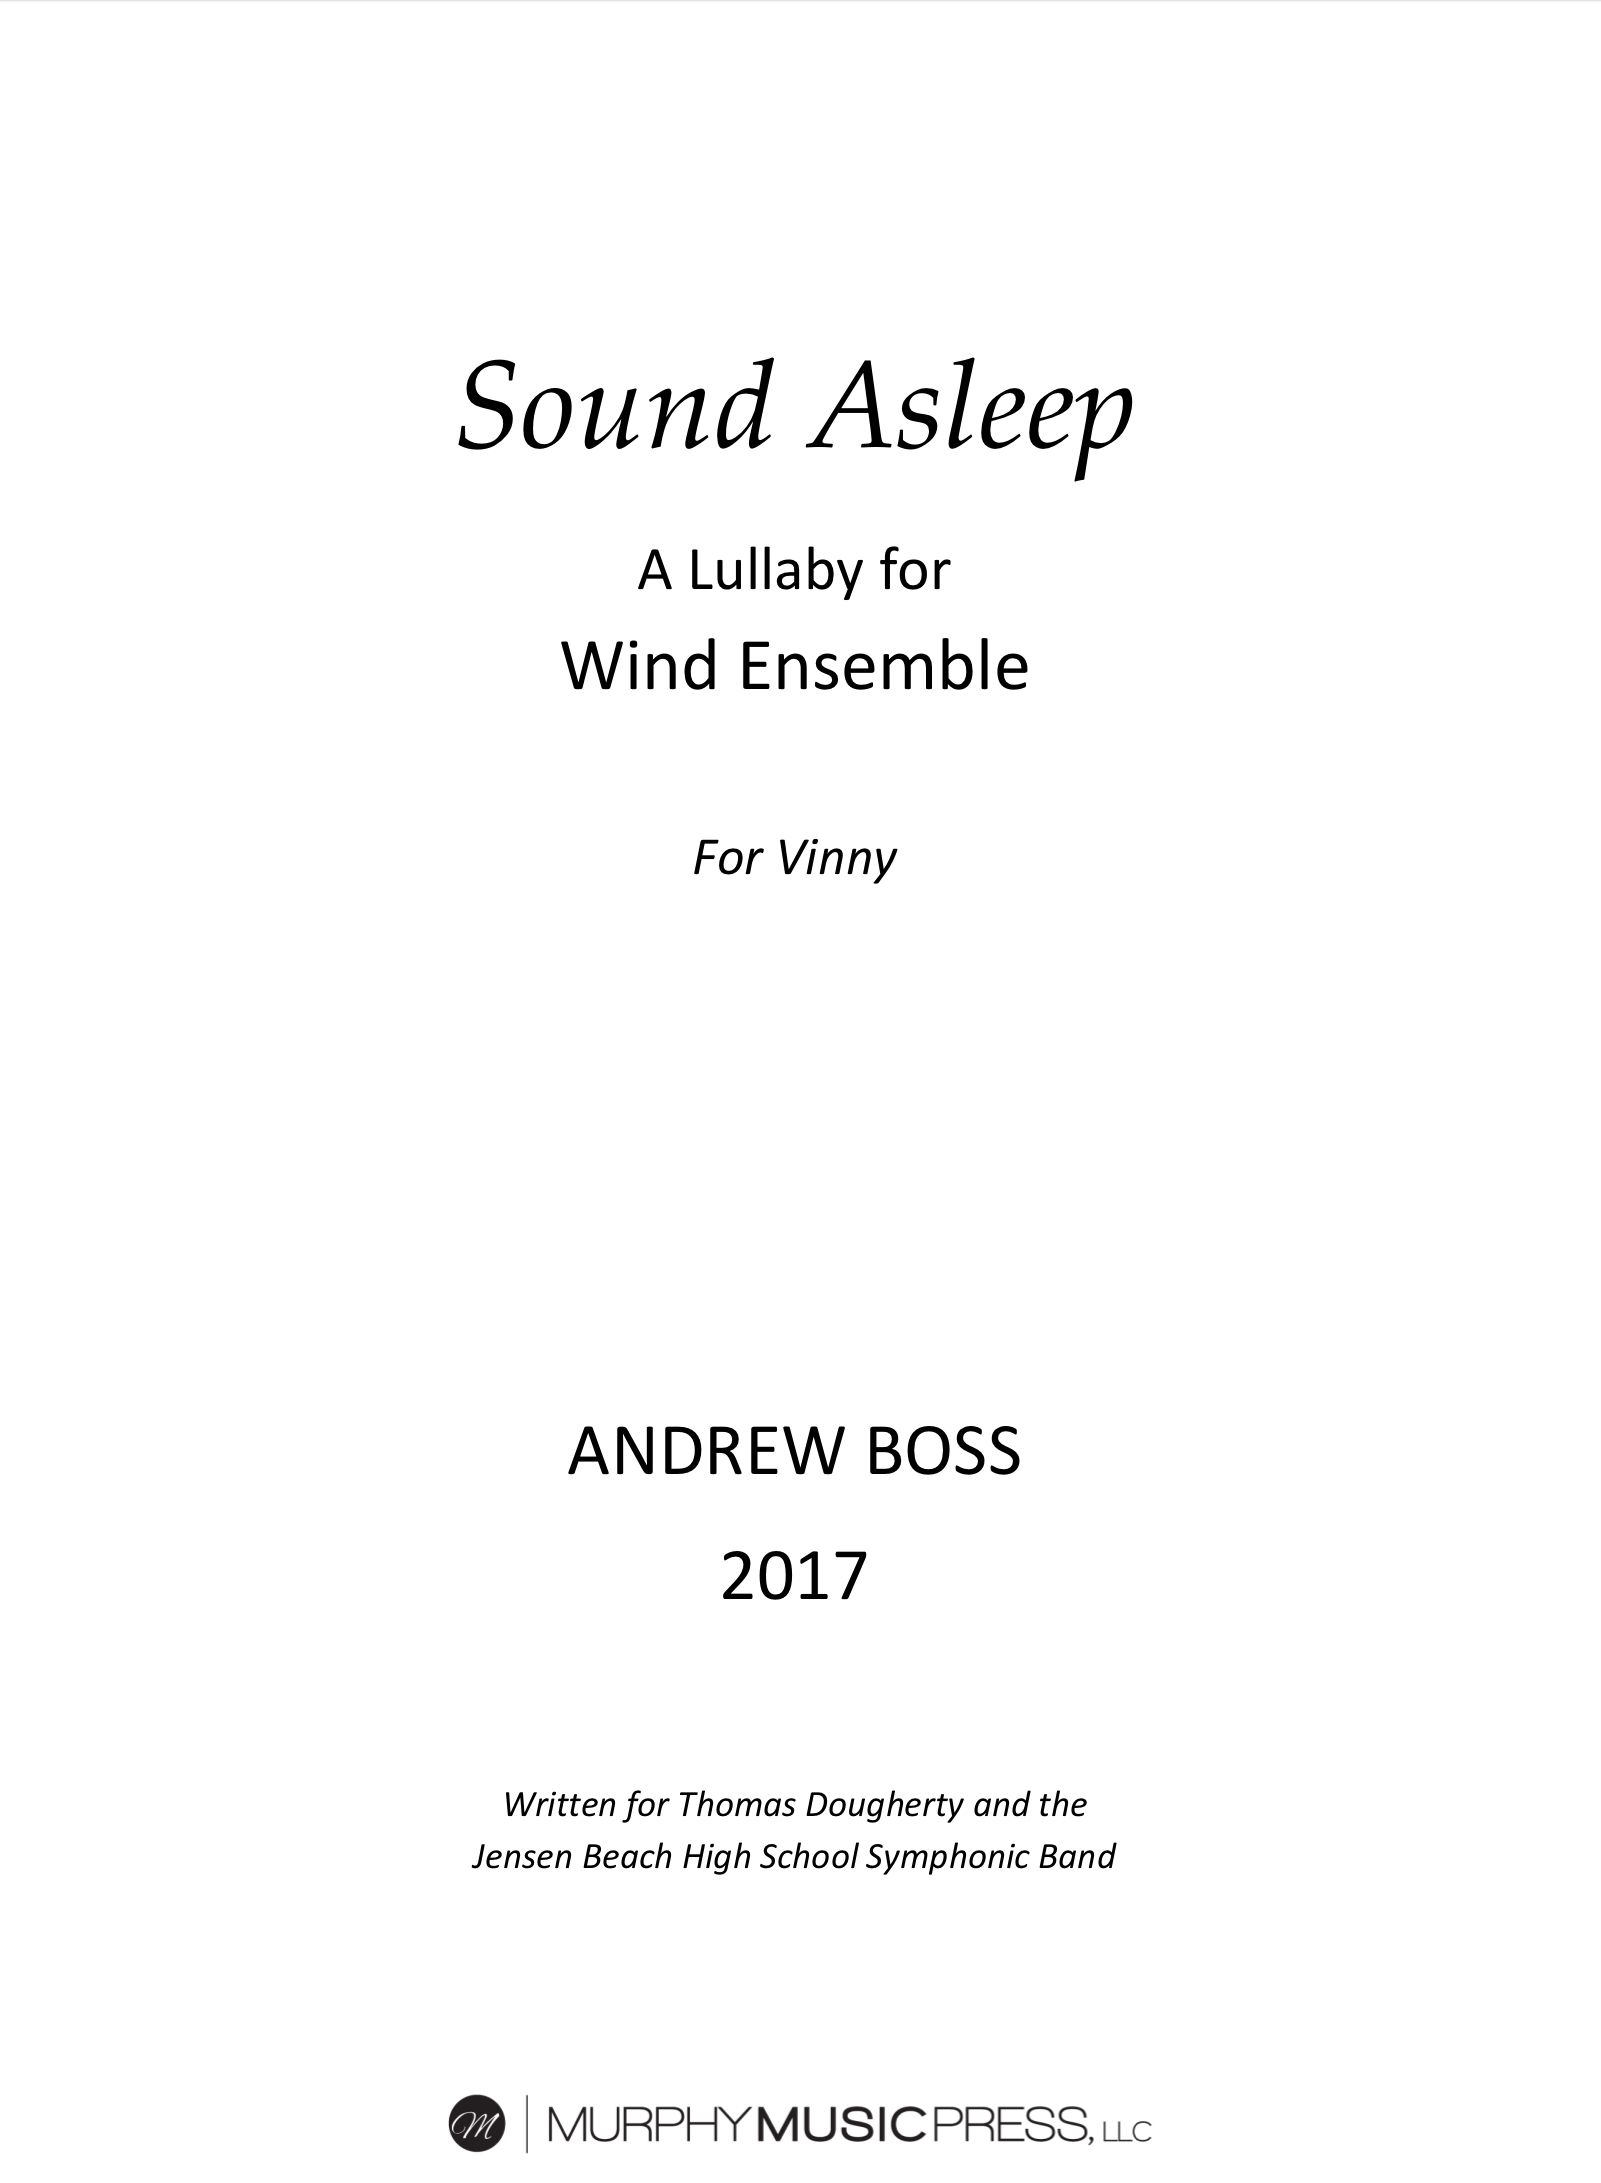 Sound Asleep by Andrew Boss